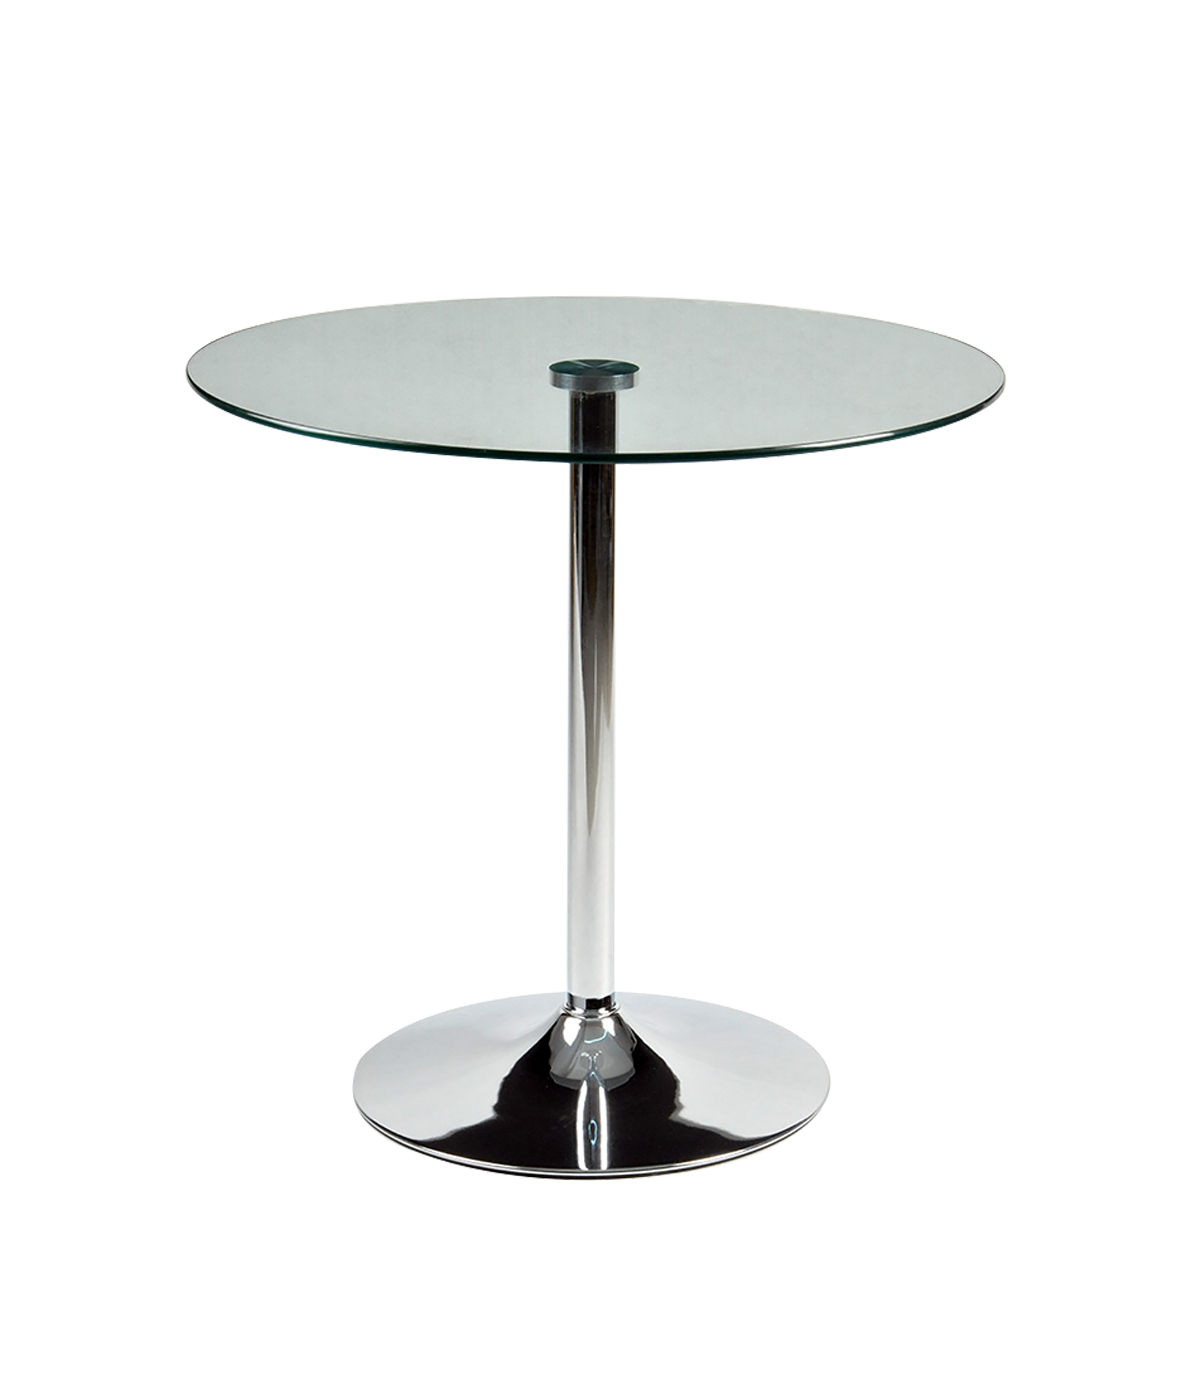 Torino 80cm Clear Glass Round Dining Table with Metal Legs